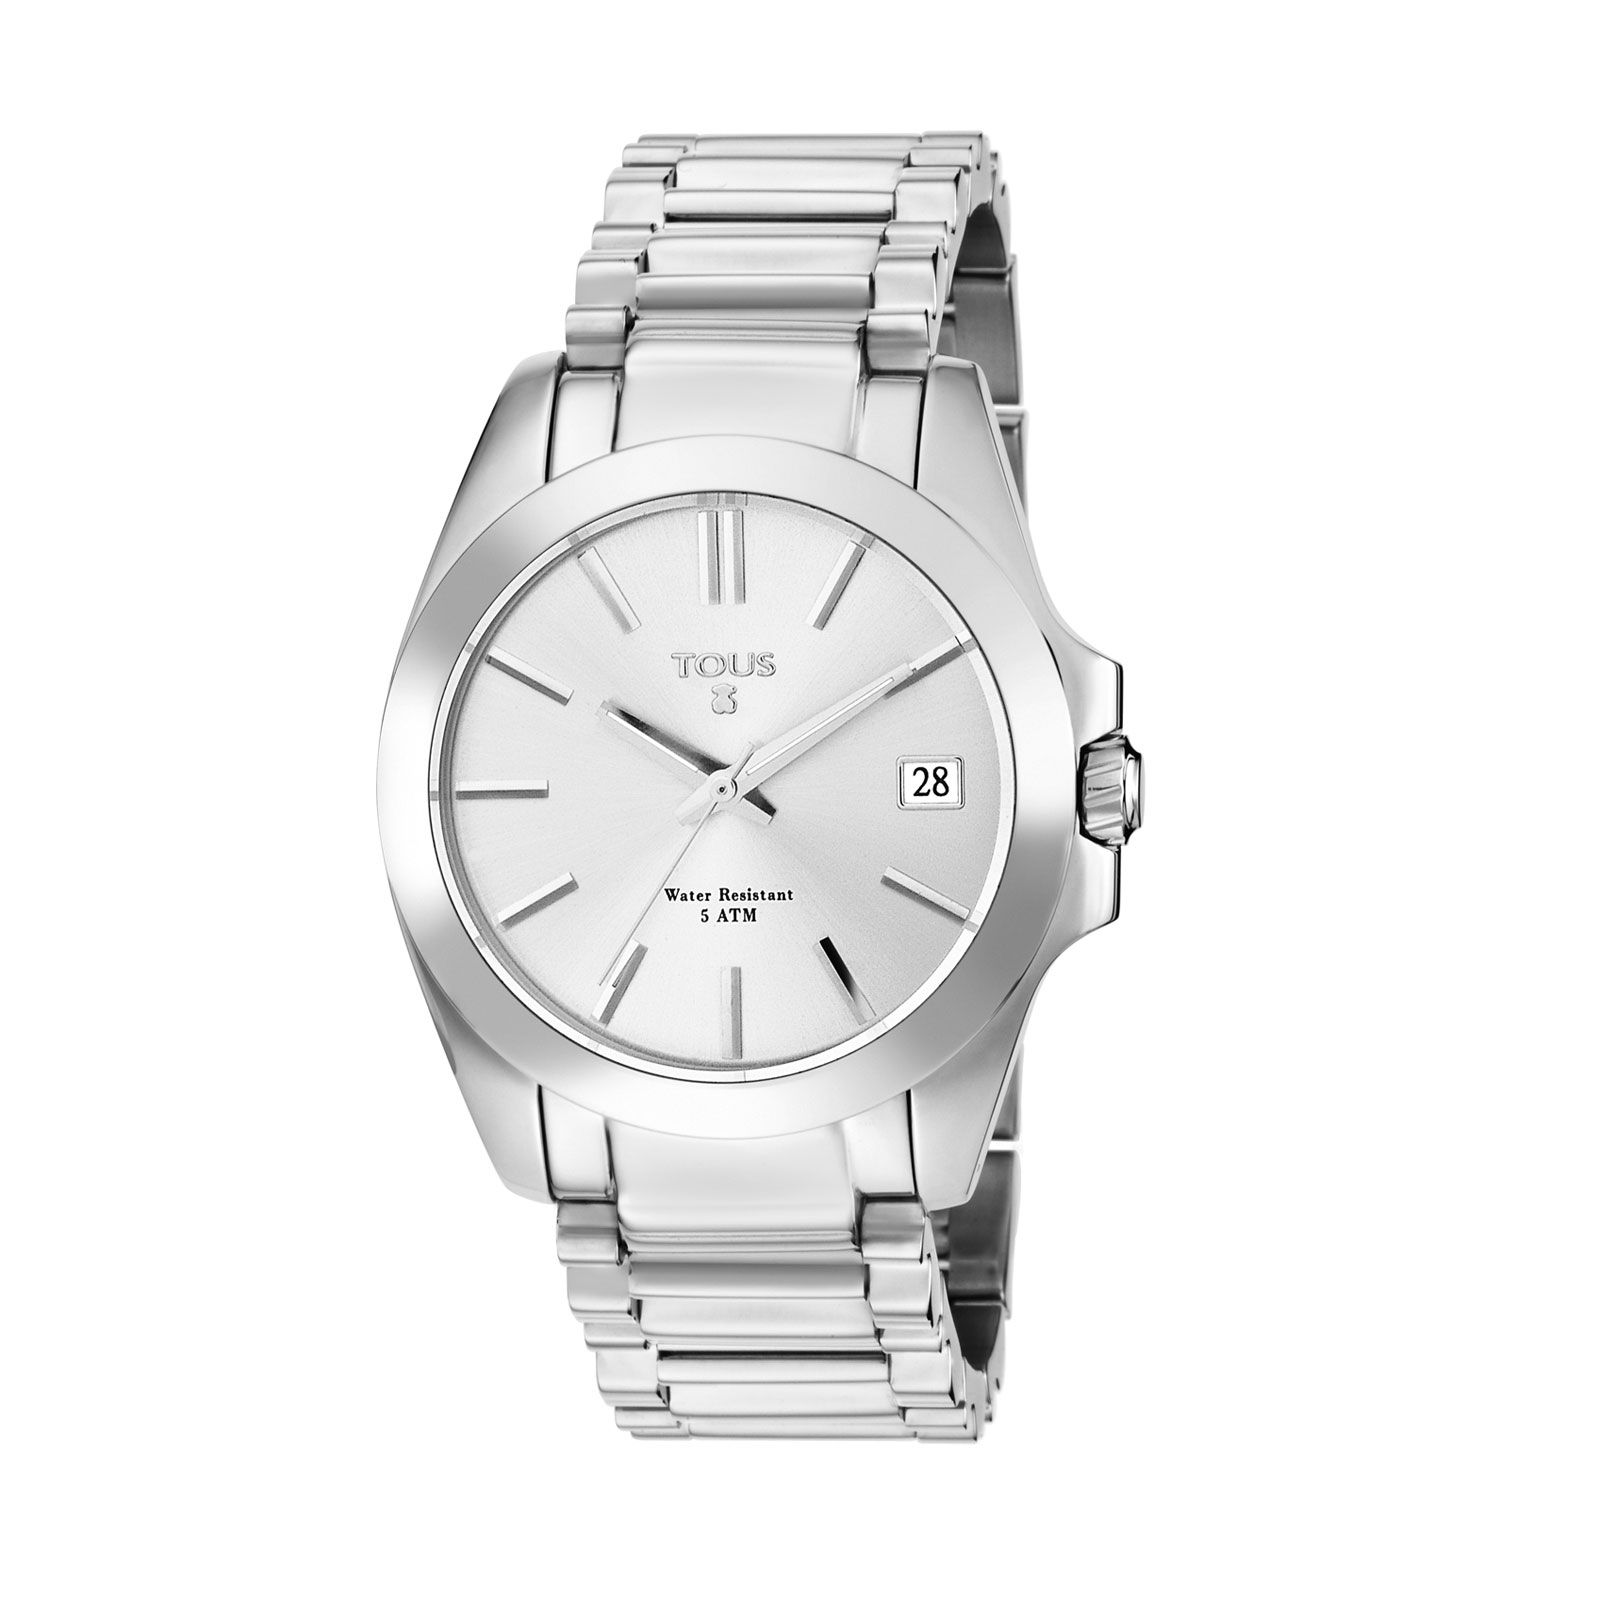 Stainless Steel Case Water Resistant 5 Atm Mineral Plane Crystal Quartz Vj52b Movement Functions Hours Minutes Seconds And Day Of The Month